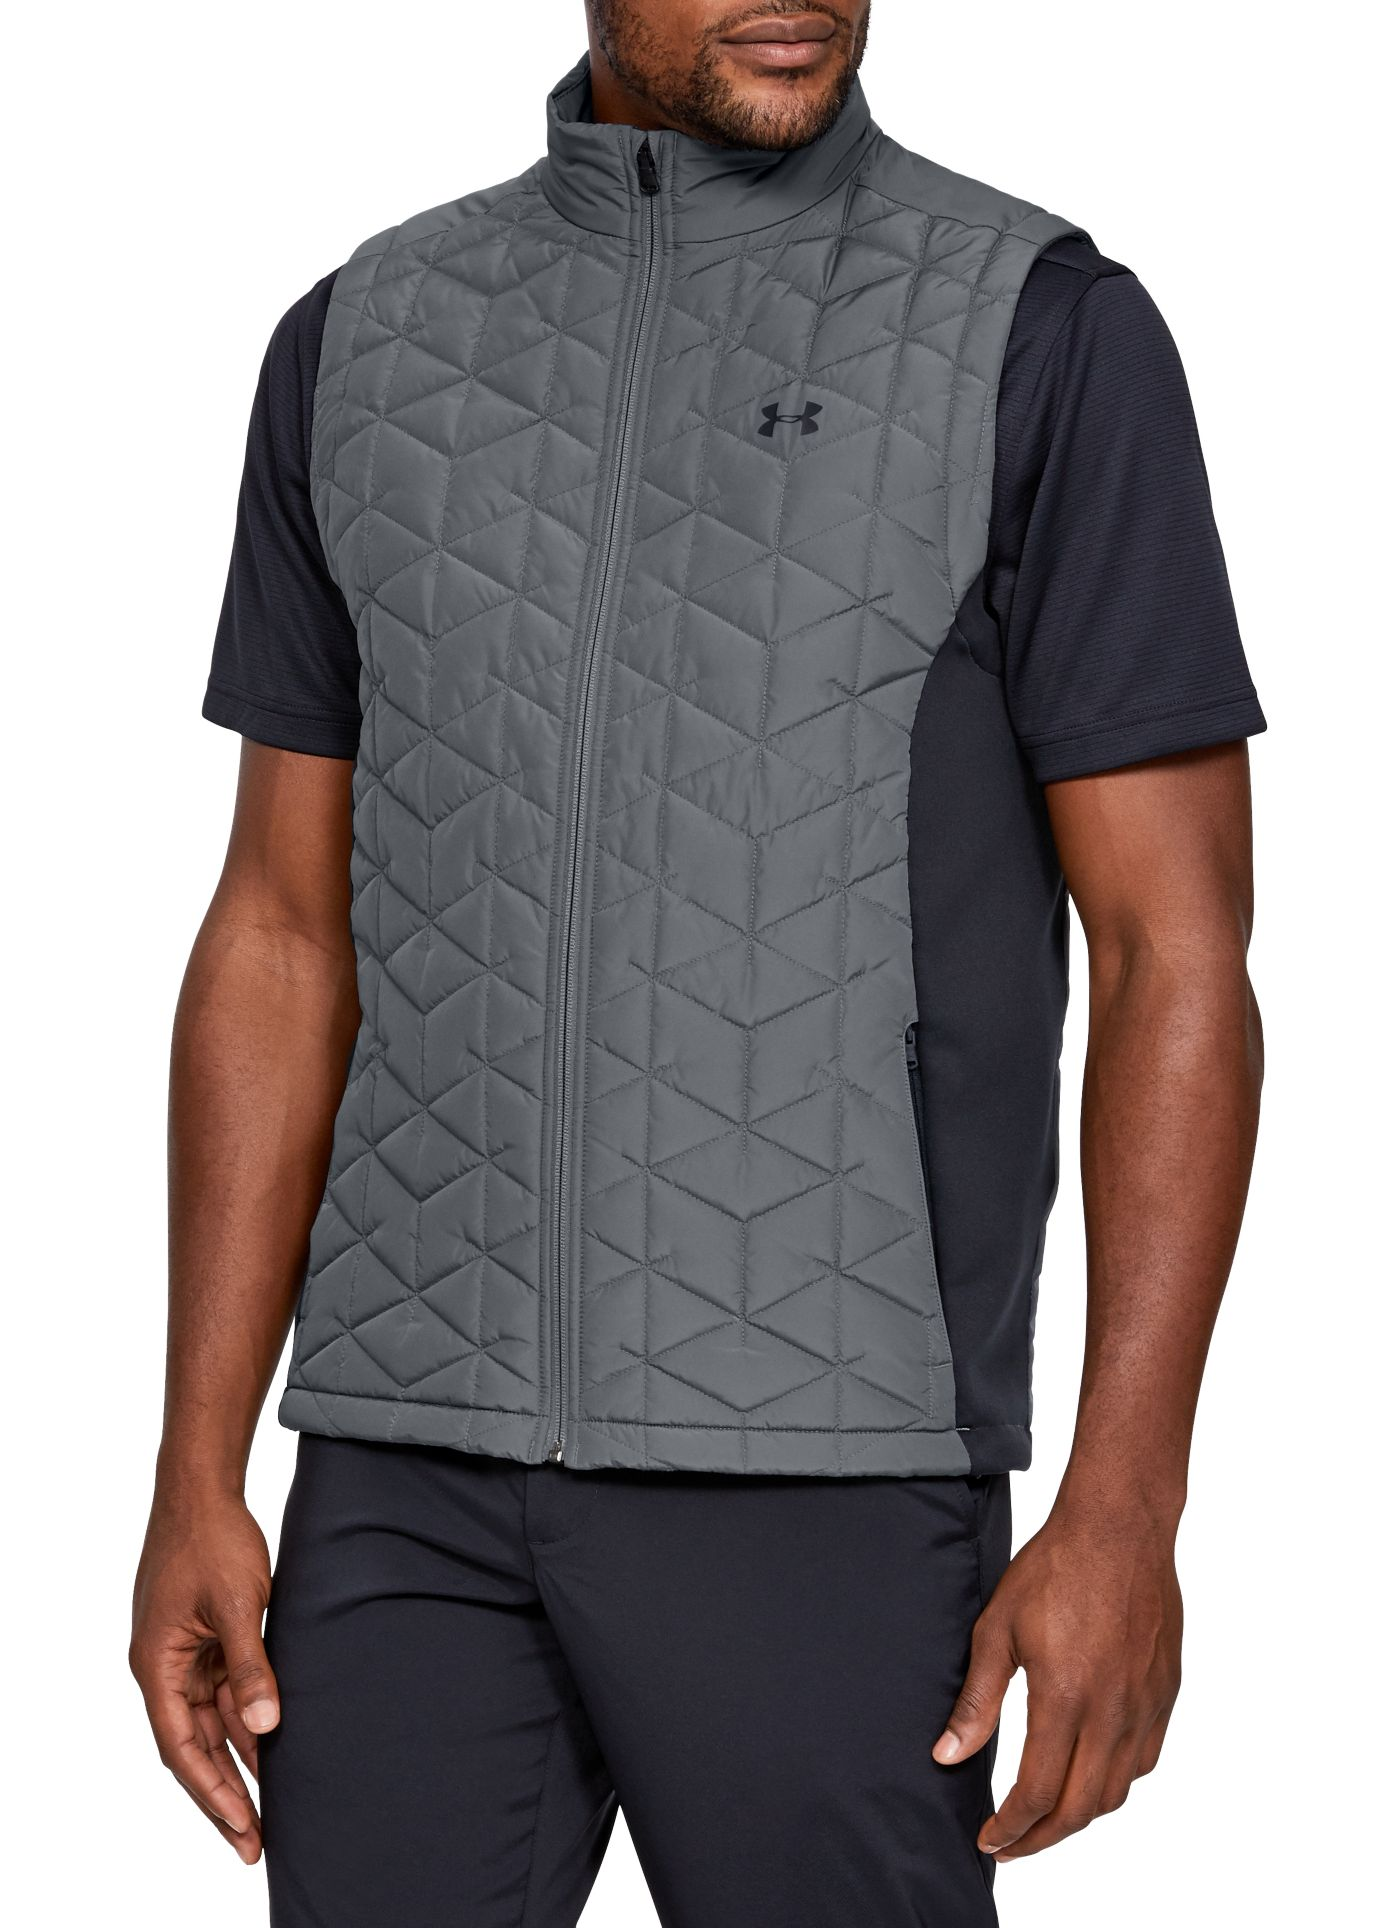 Under Armour Men's Reactor Elements Hybrid Golf Vest